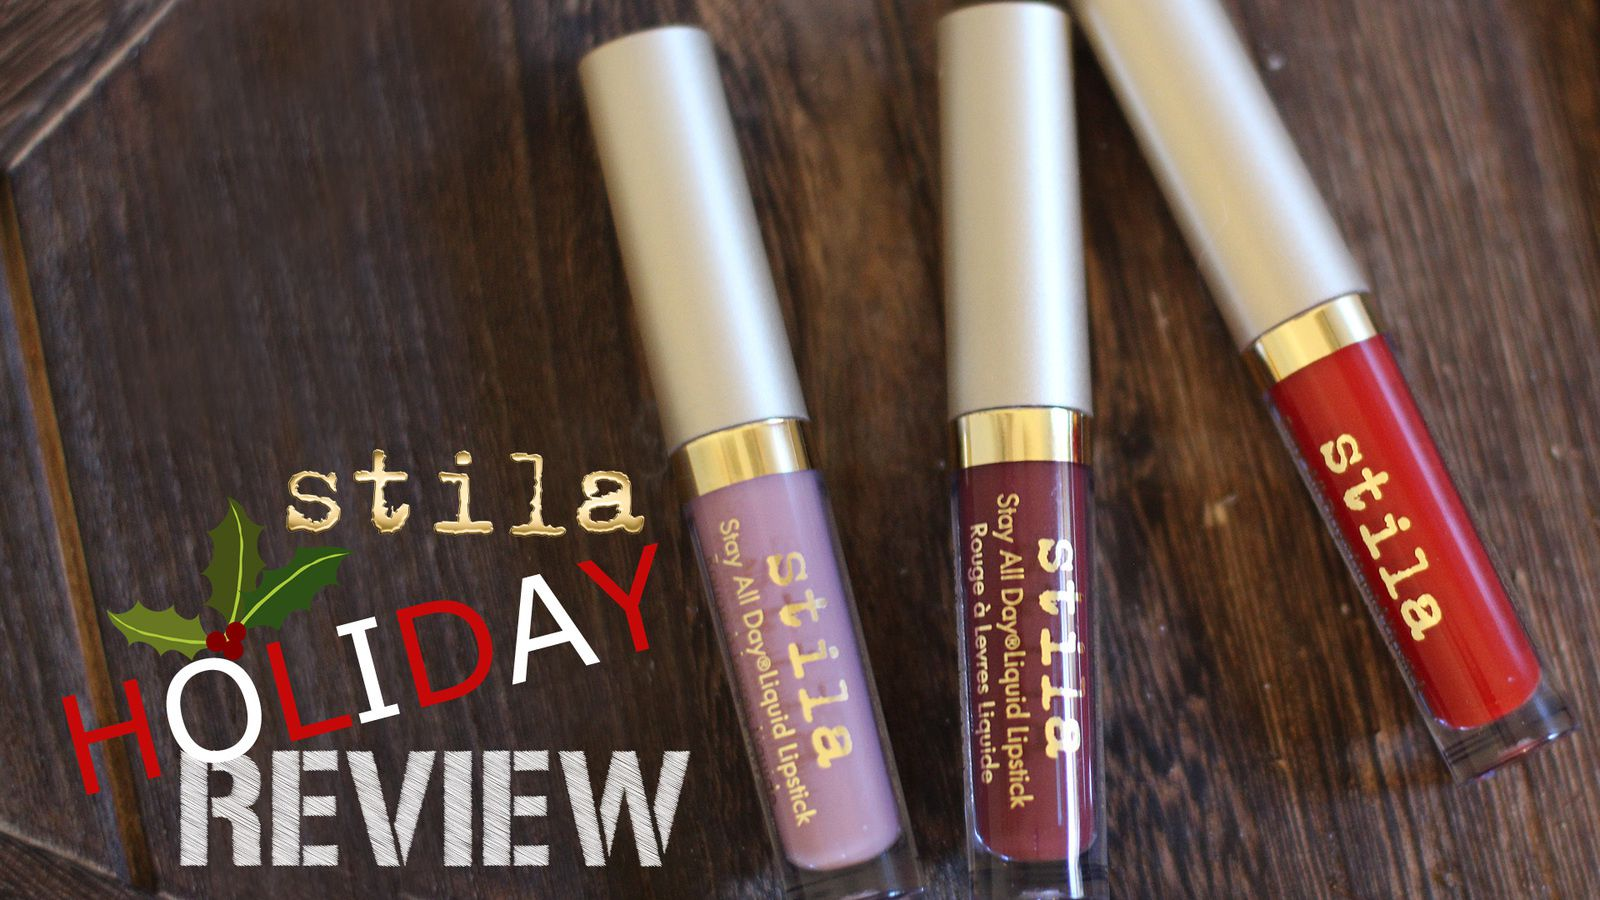 Stila Eternal Love Liquid Lipstick Holiday Set | SWATCHES + REVIEW